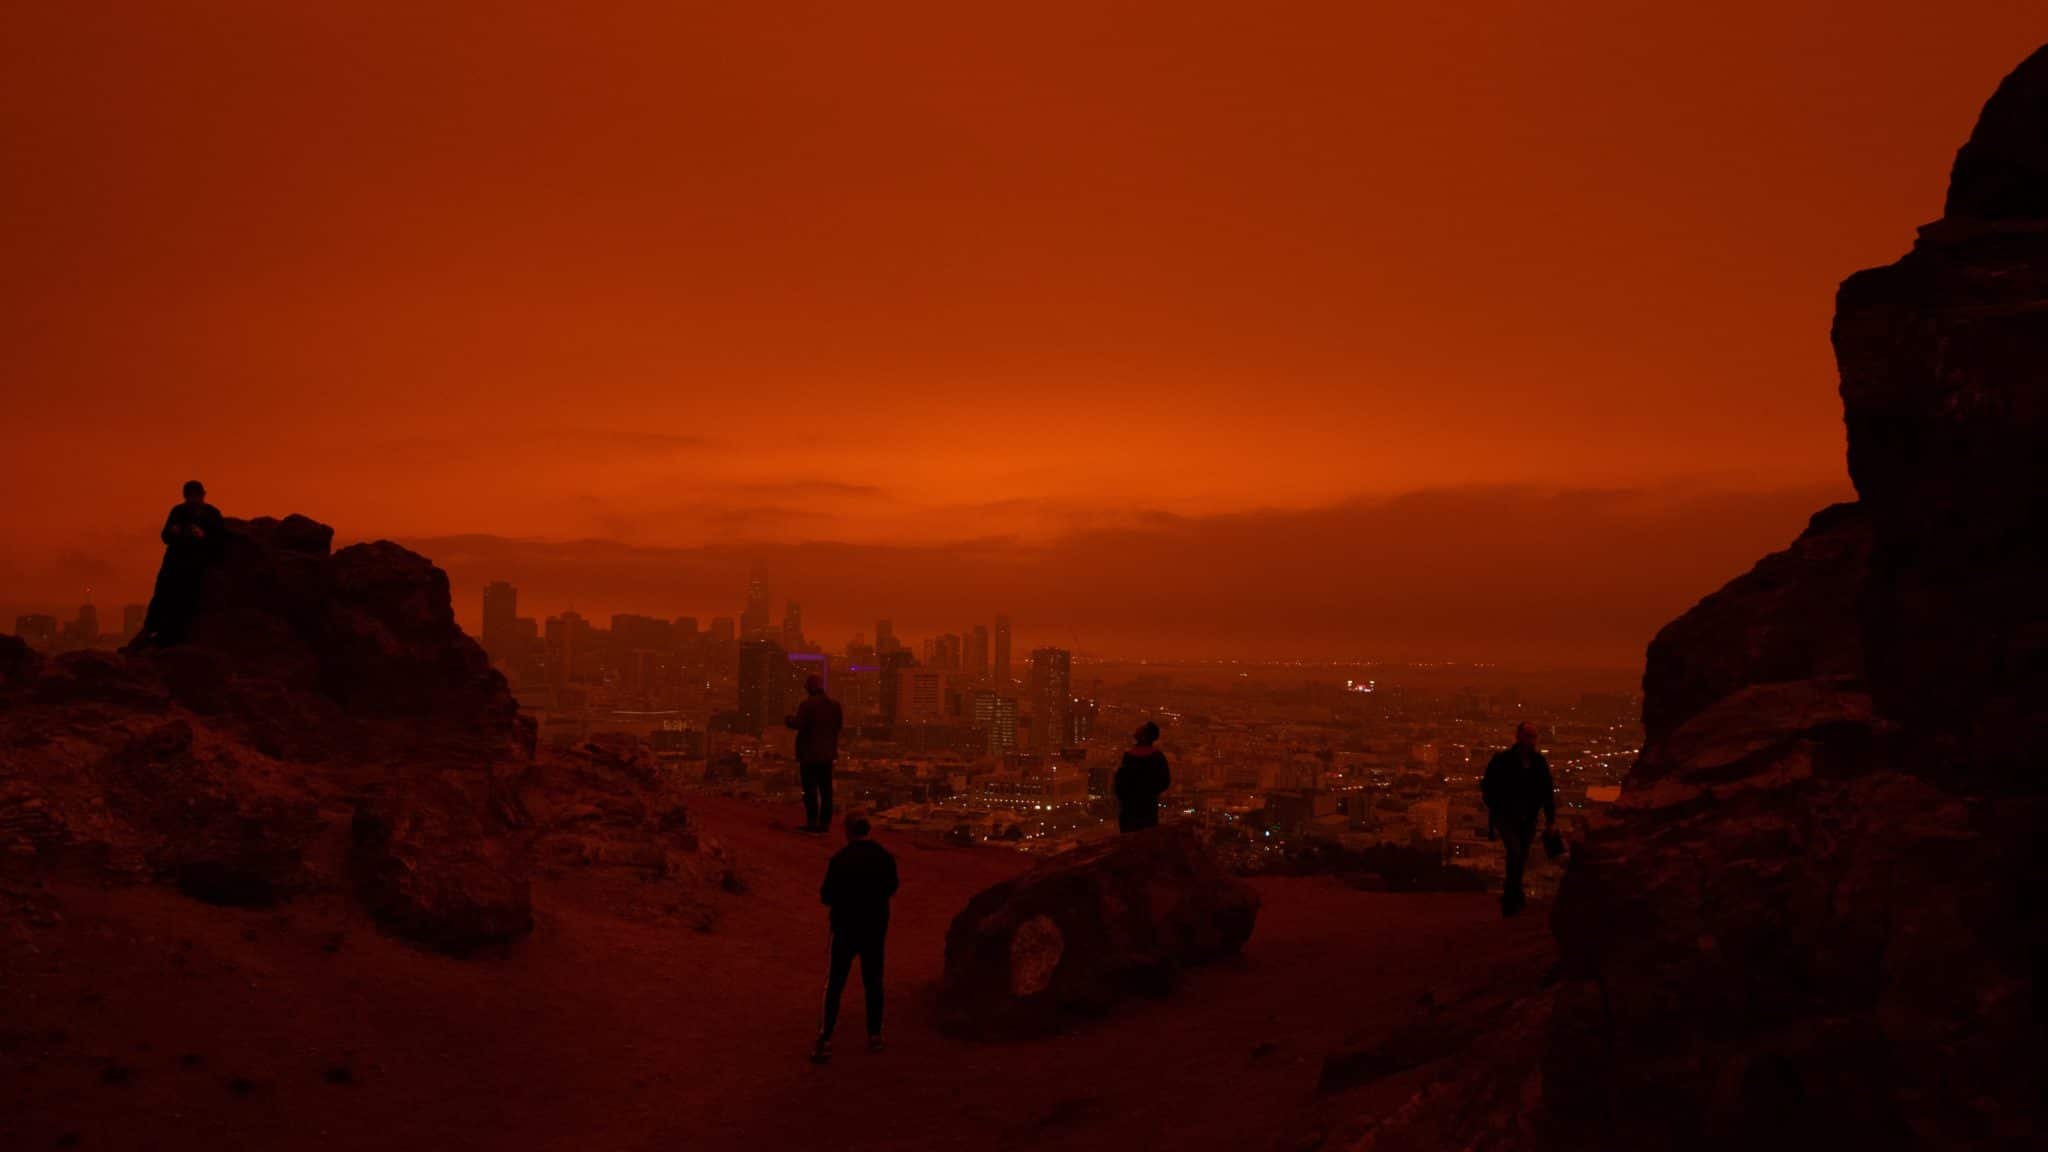 People on a hill watching raging wild fires close to a city